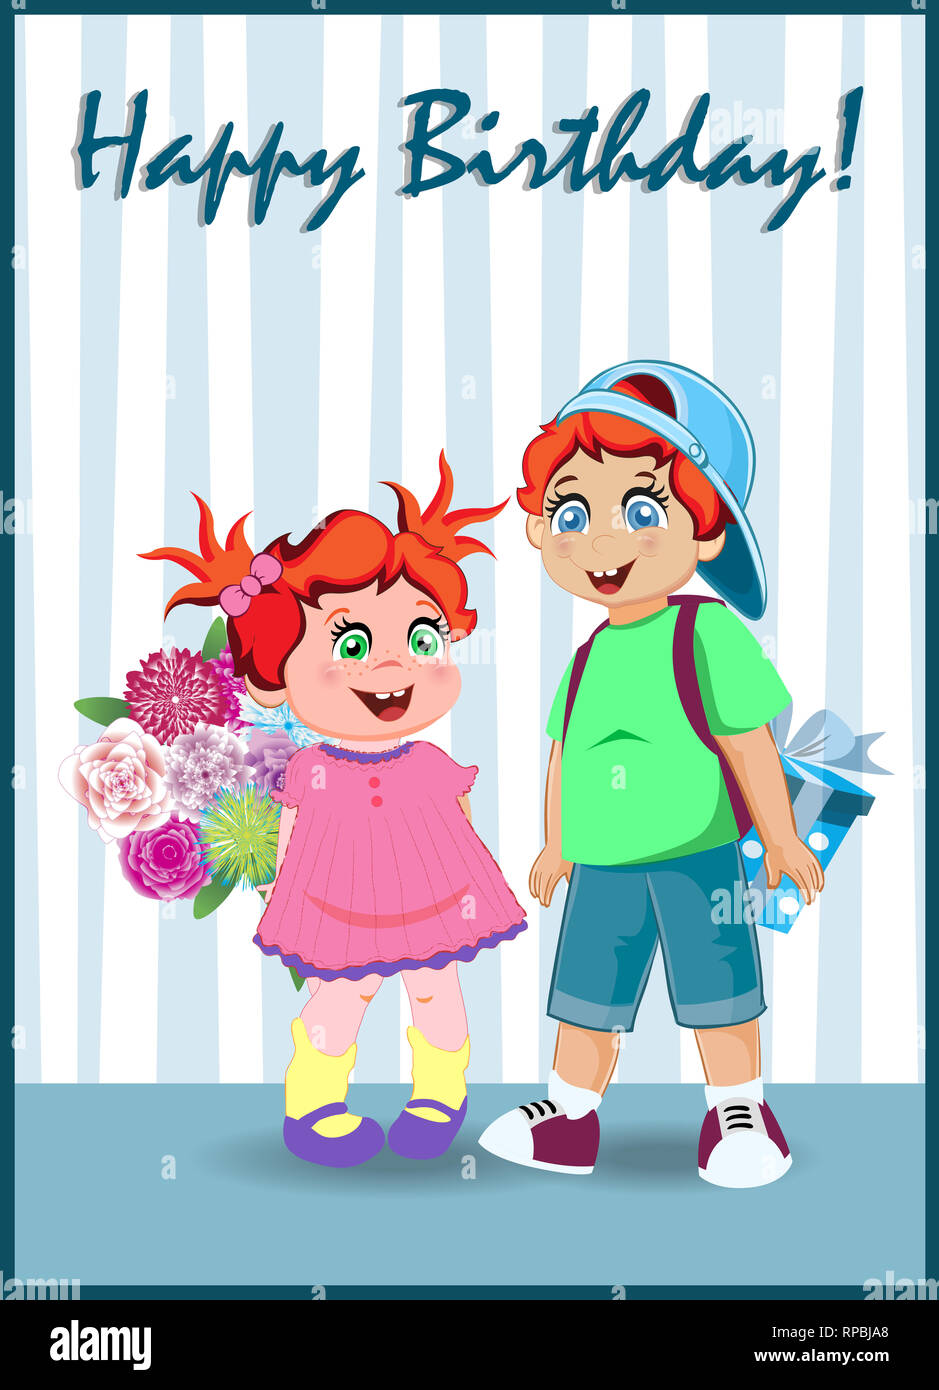 Happy birthday greeting card of cute cartoon kids characters holding big gift box and flowers bouquet